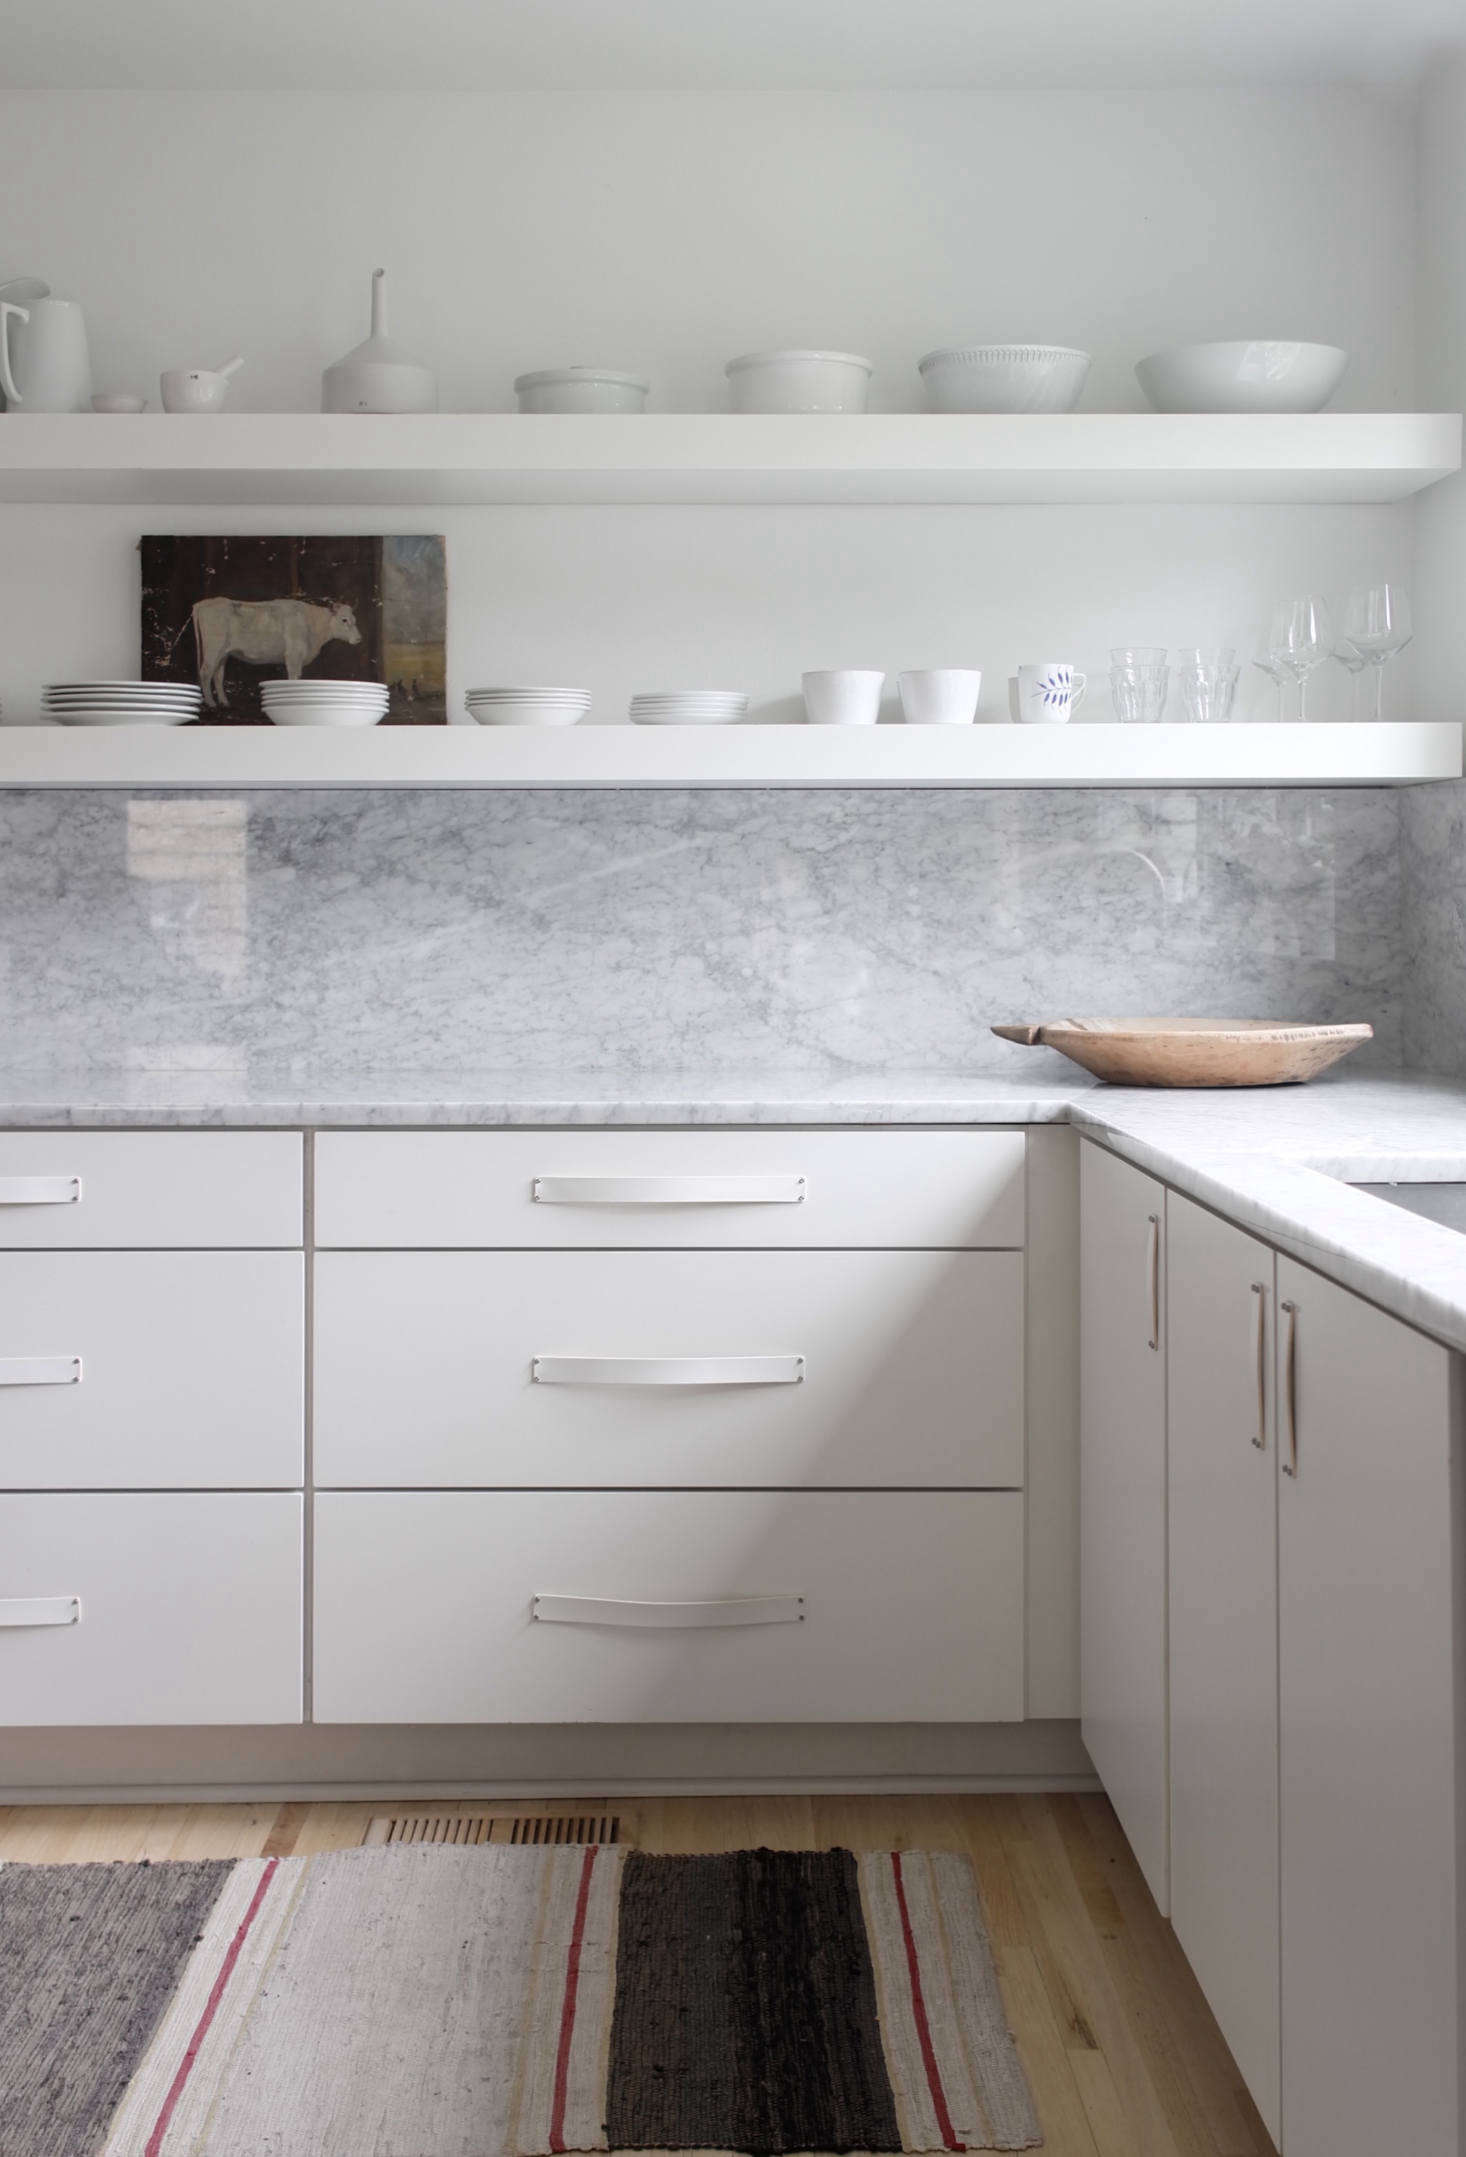 A detail of the kitchen drawers and open shelves, a schema that Izabella and Brandon designed themselves. Photograph by Izabella Simmons.